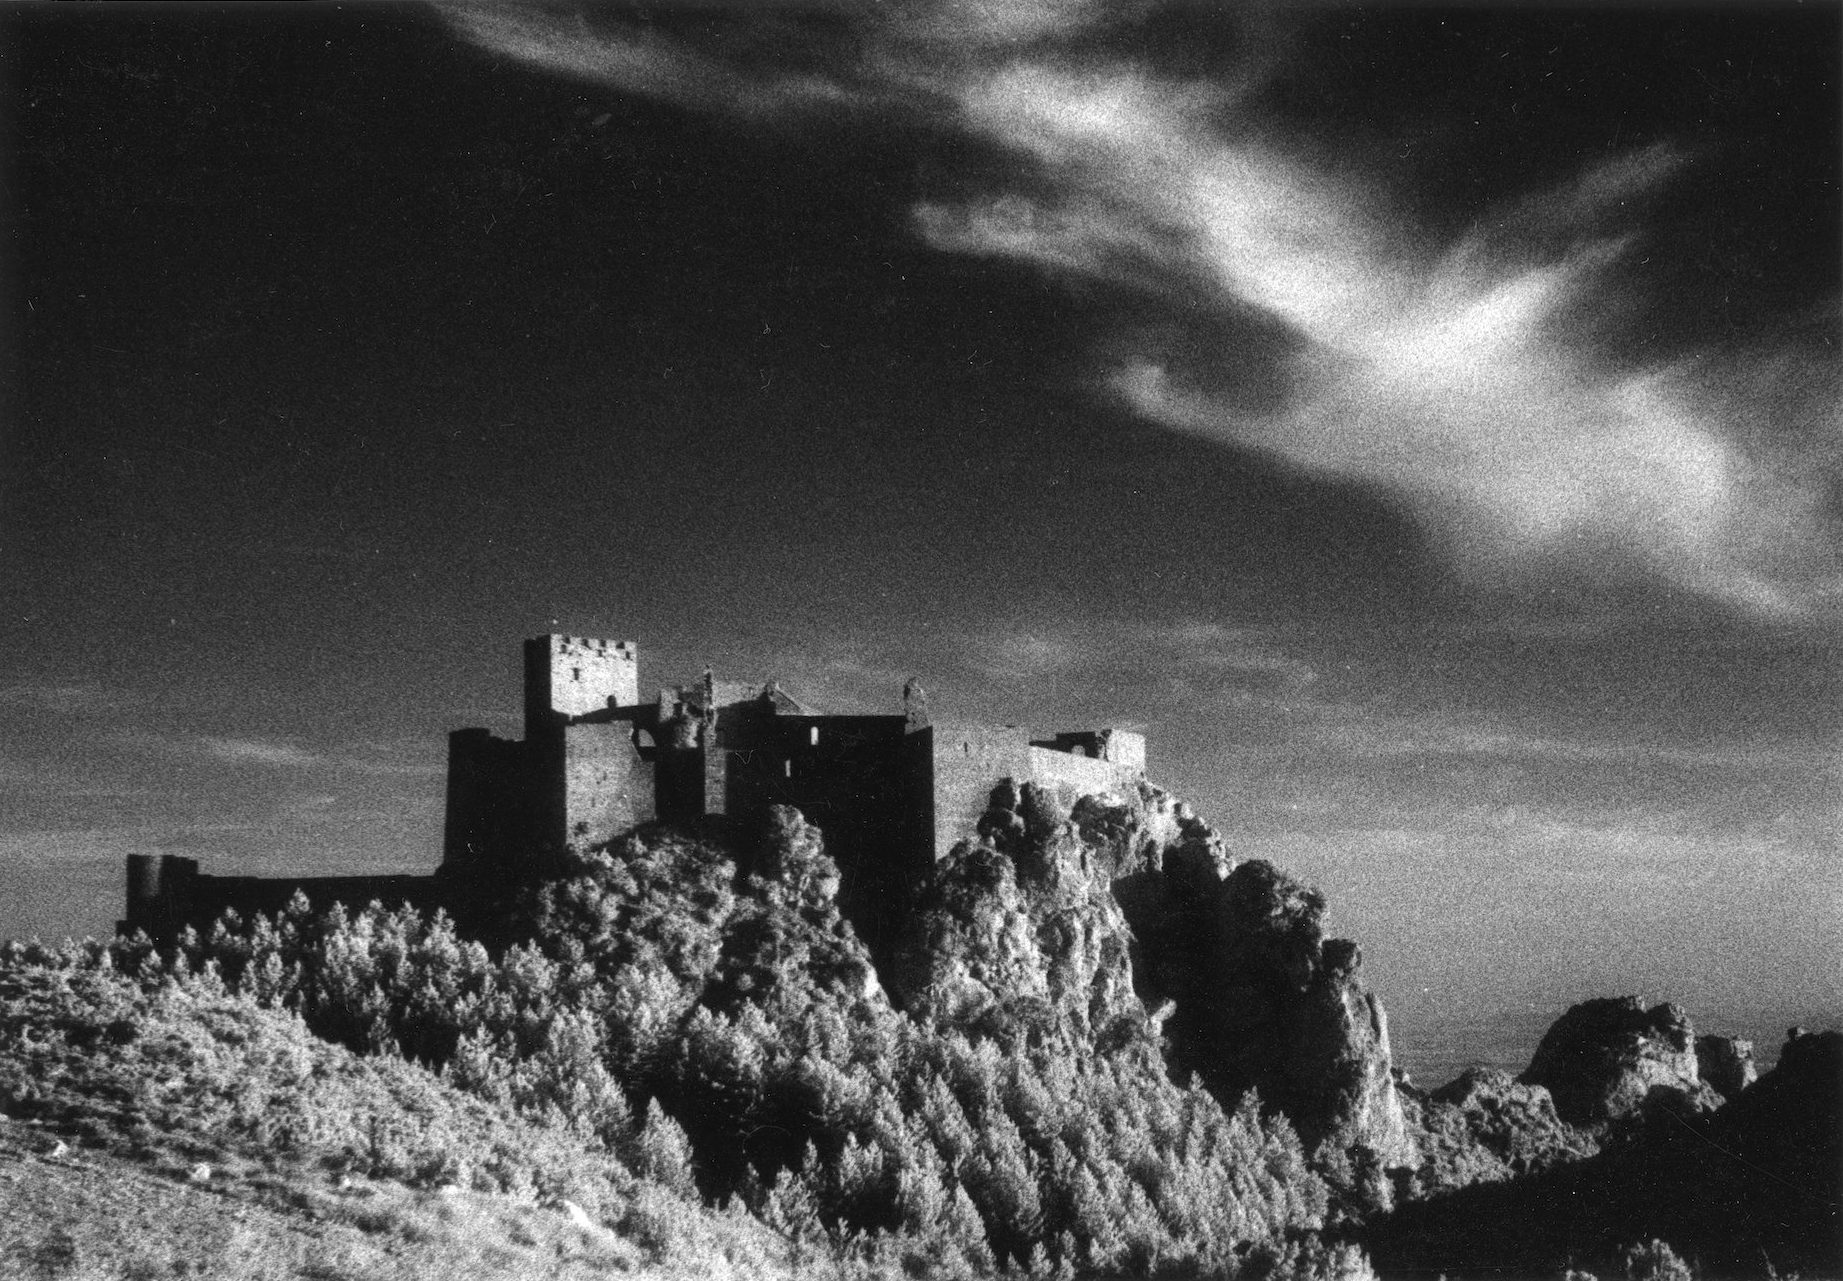 <center>HUESCA, SPAIN LOARRE CASTLE - (INFRA-RED)</center>